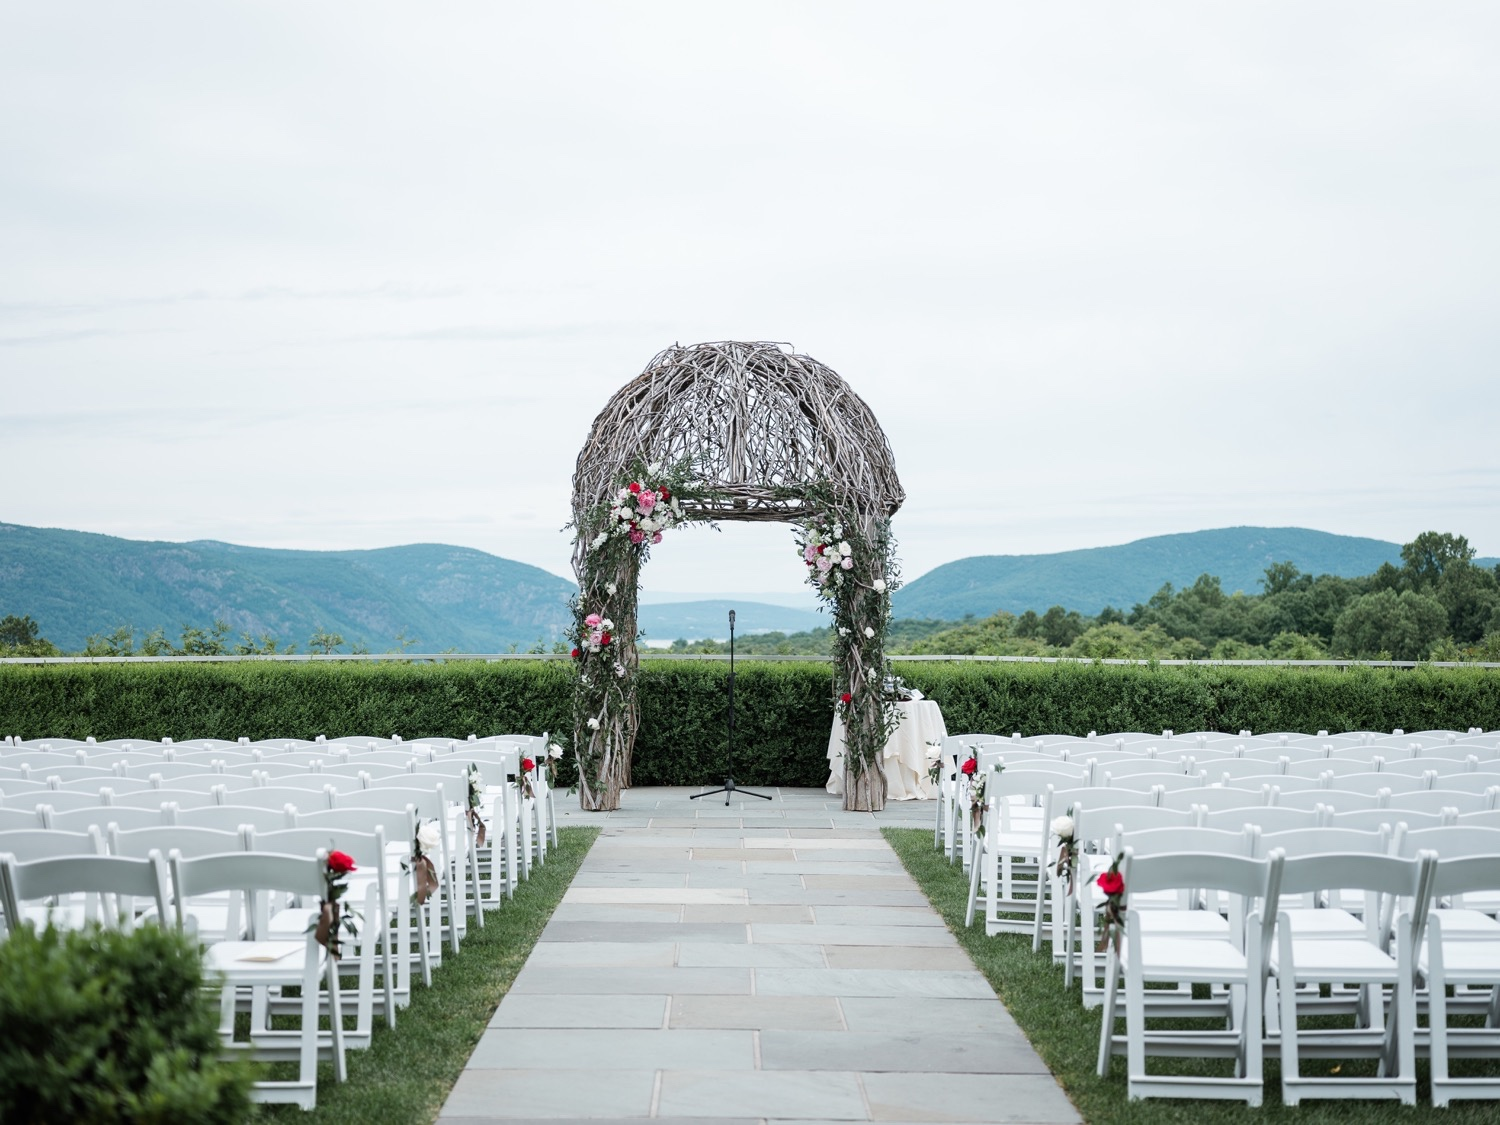 The Garrison Wedding, The Garrison venue, Hudson Valley wedding, hudson valley wedding photographer, catskills wedding photographer, the garrison wedding photos, best catskills wedding photographer, wedding ceremony ideas, rustic ceremony, chuppah, floral chuppah ideas